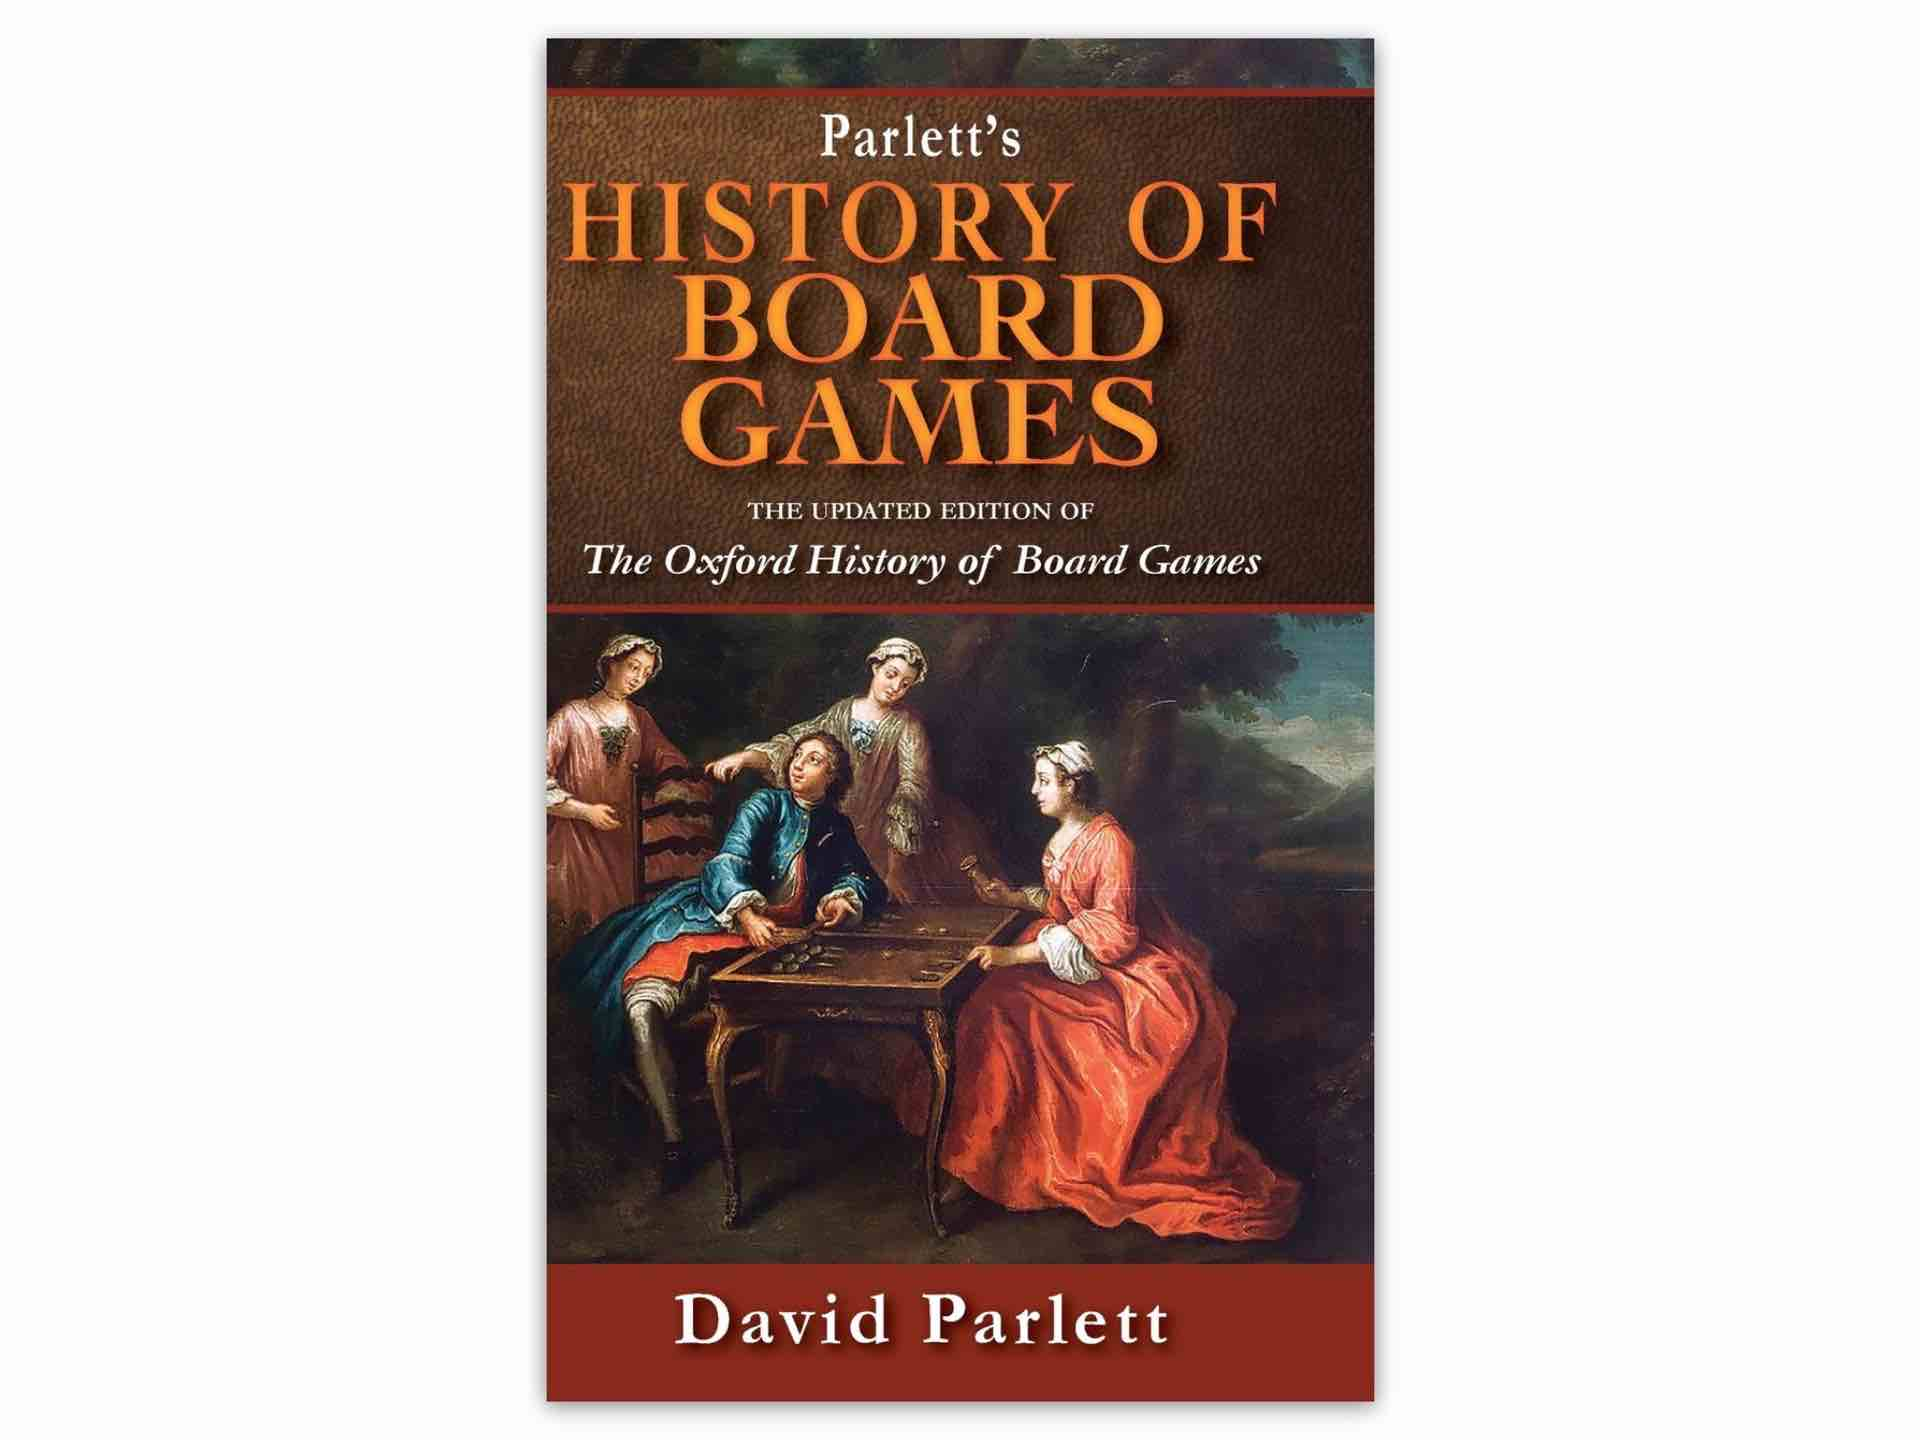 parletts-history-of-board-games